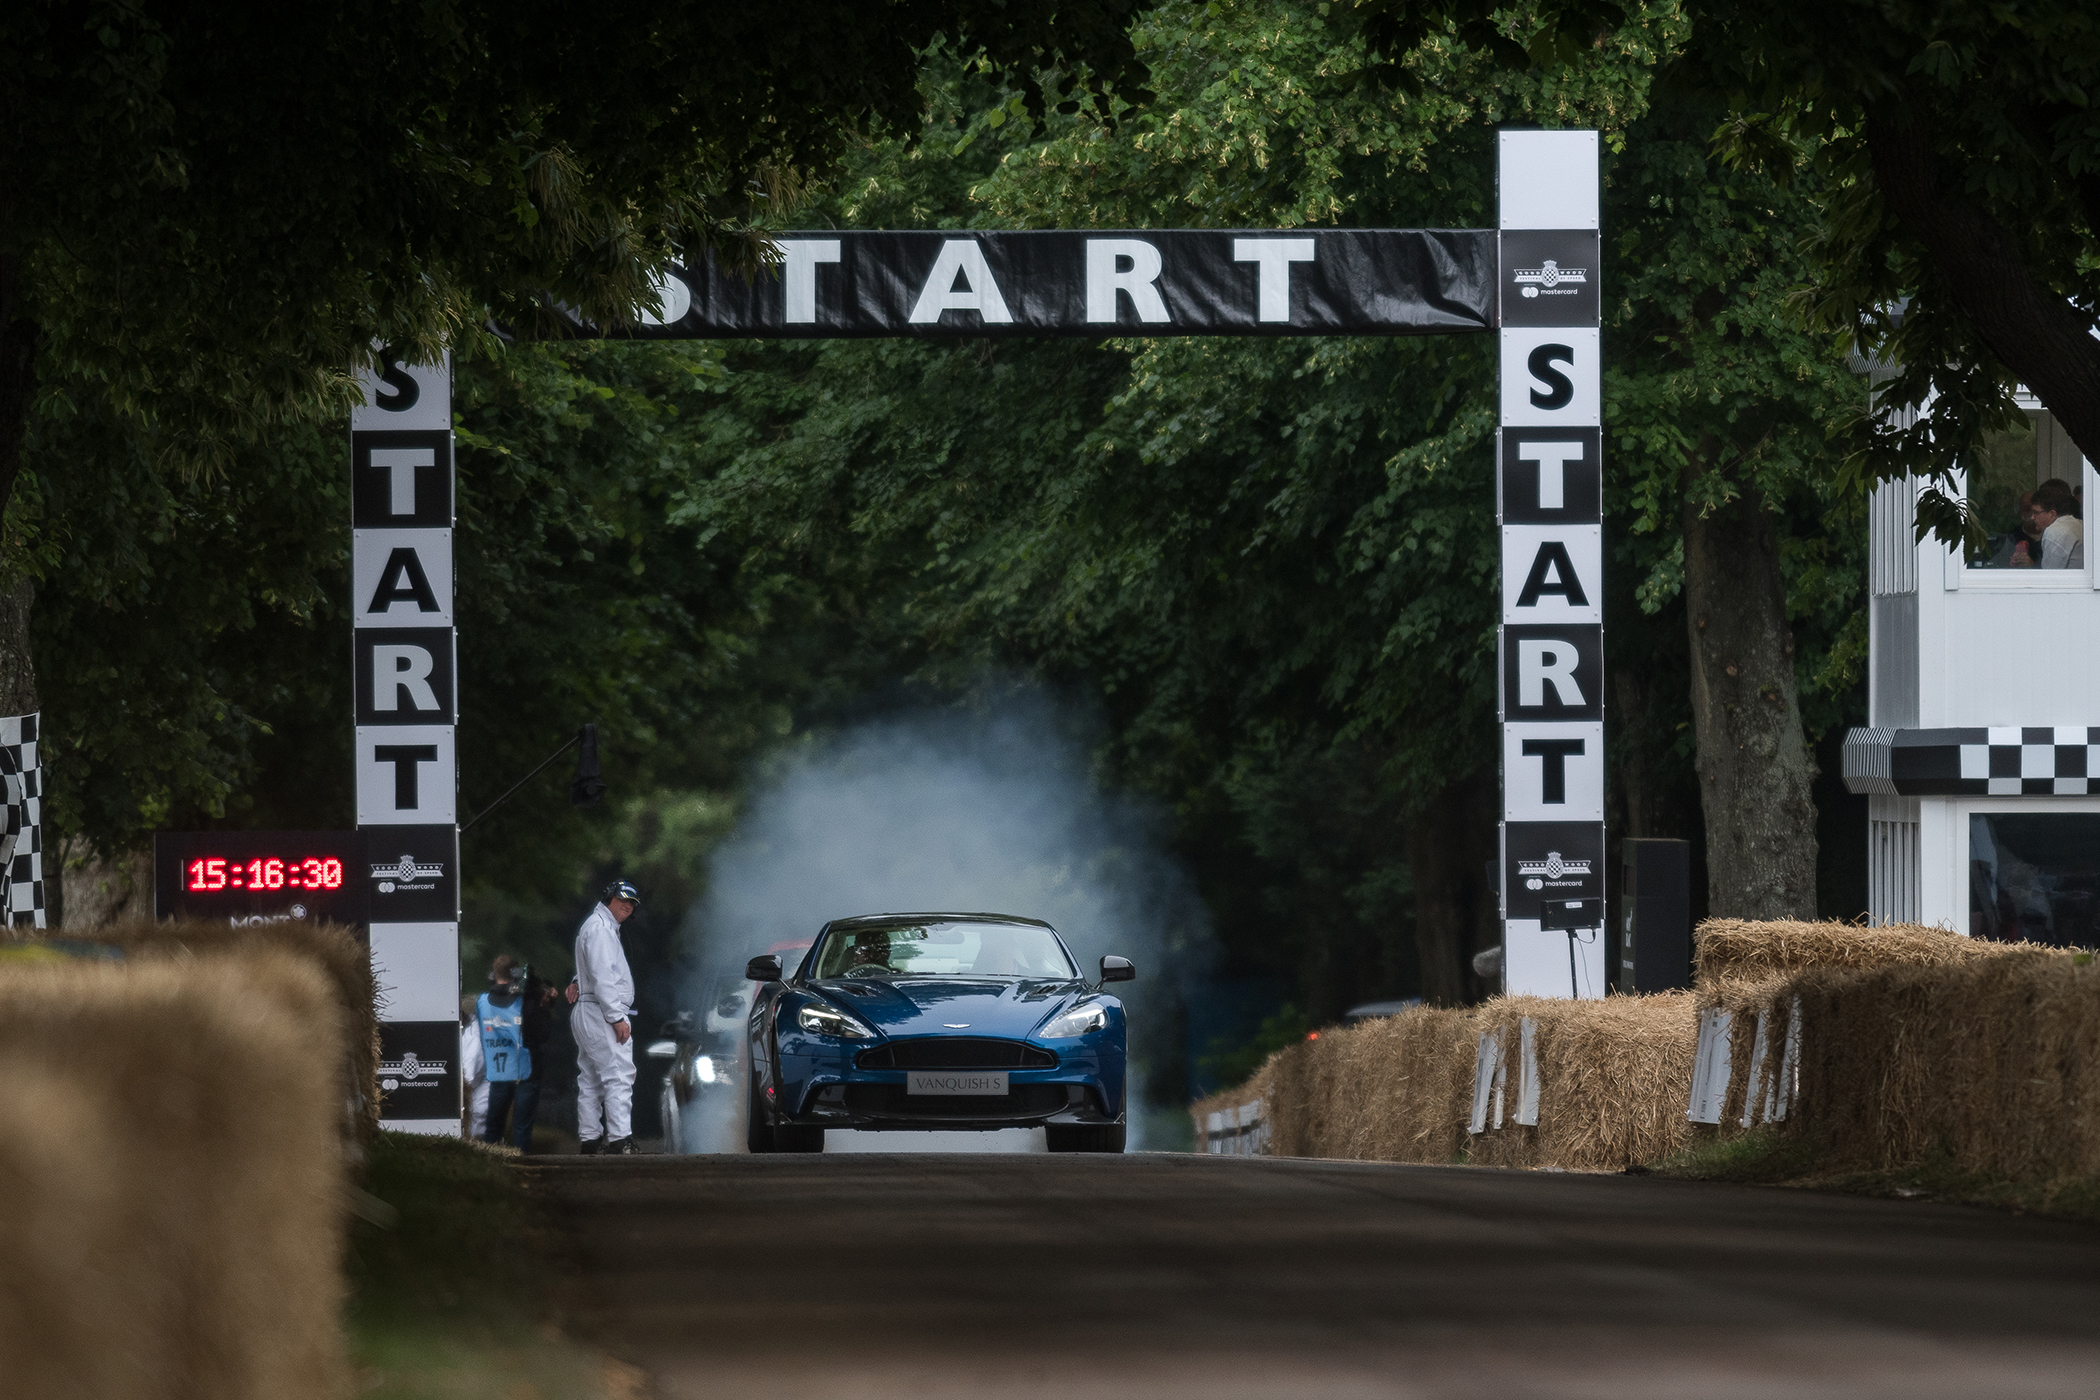 Blue Aston Martin on start line at evening race, Goodwood Festival of Speed 2017